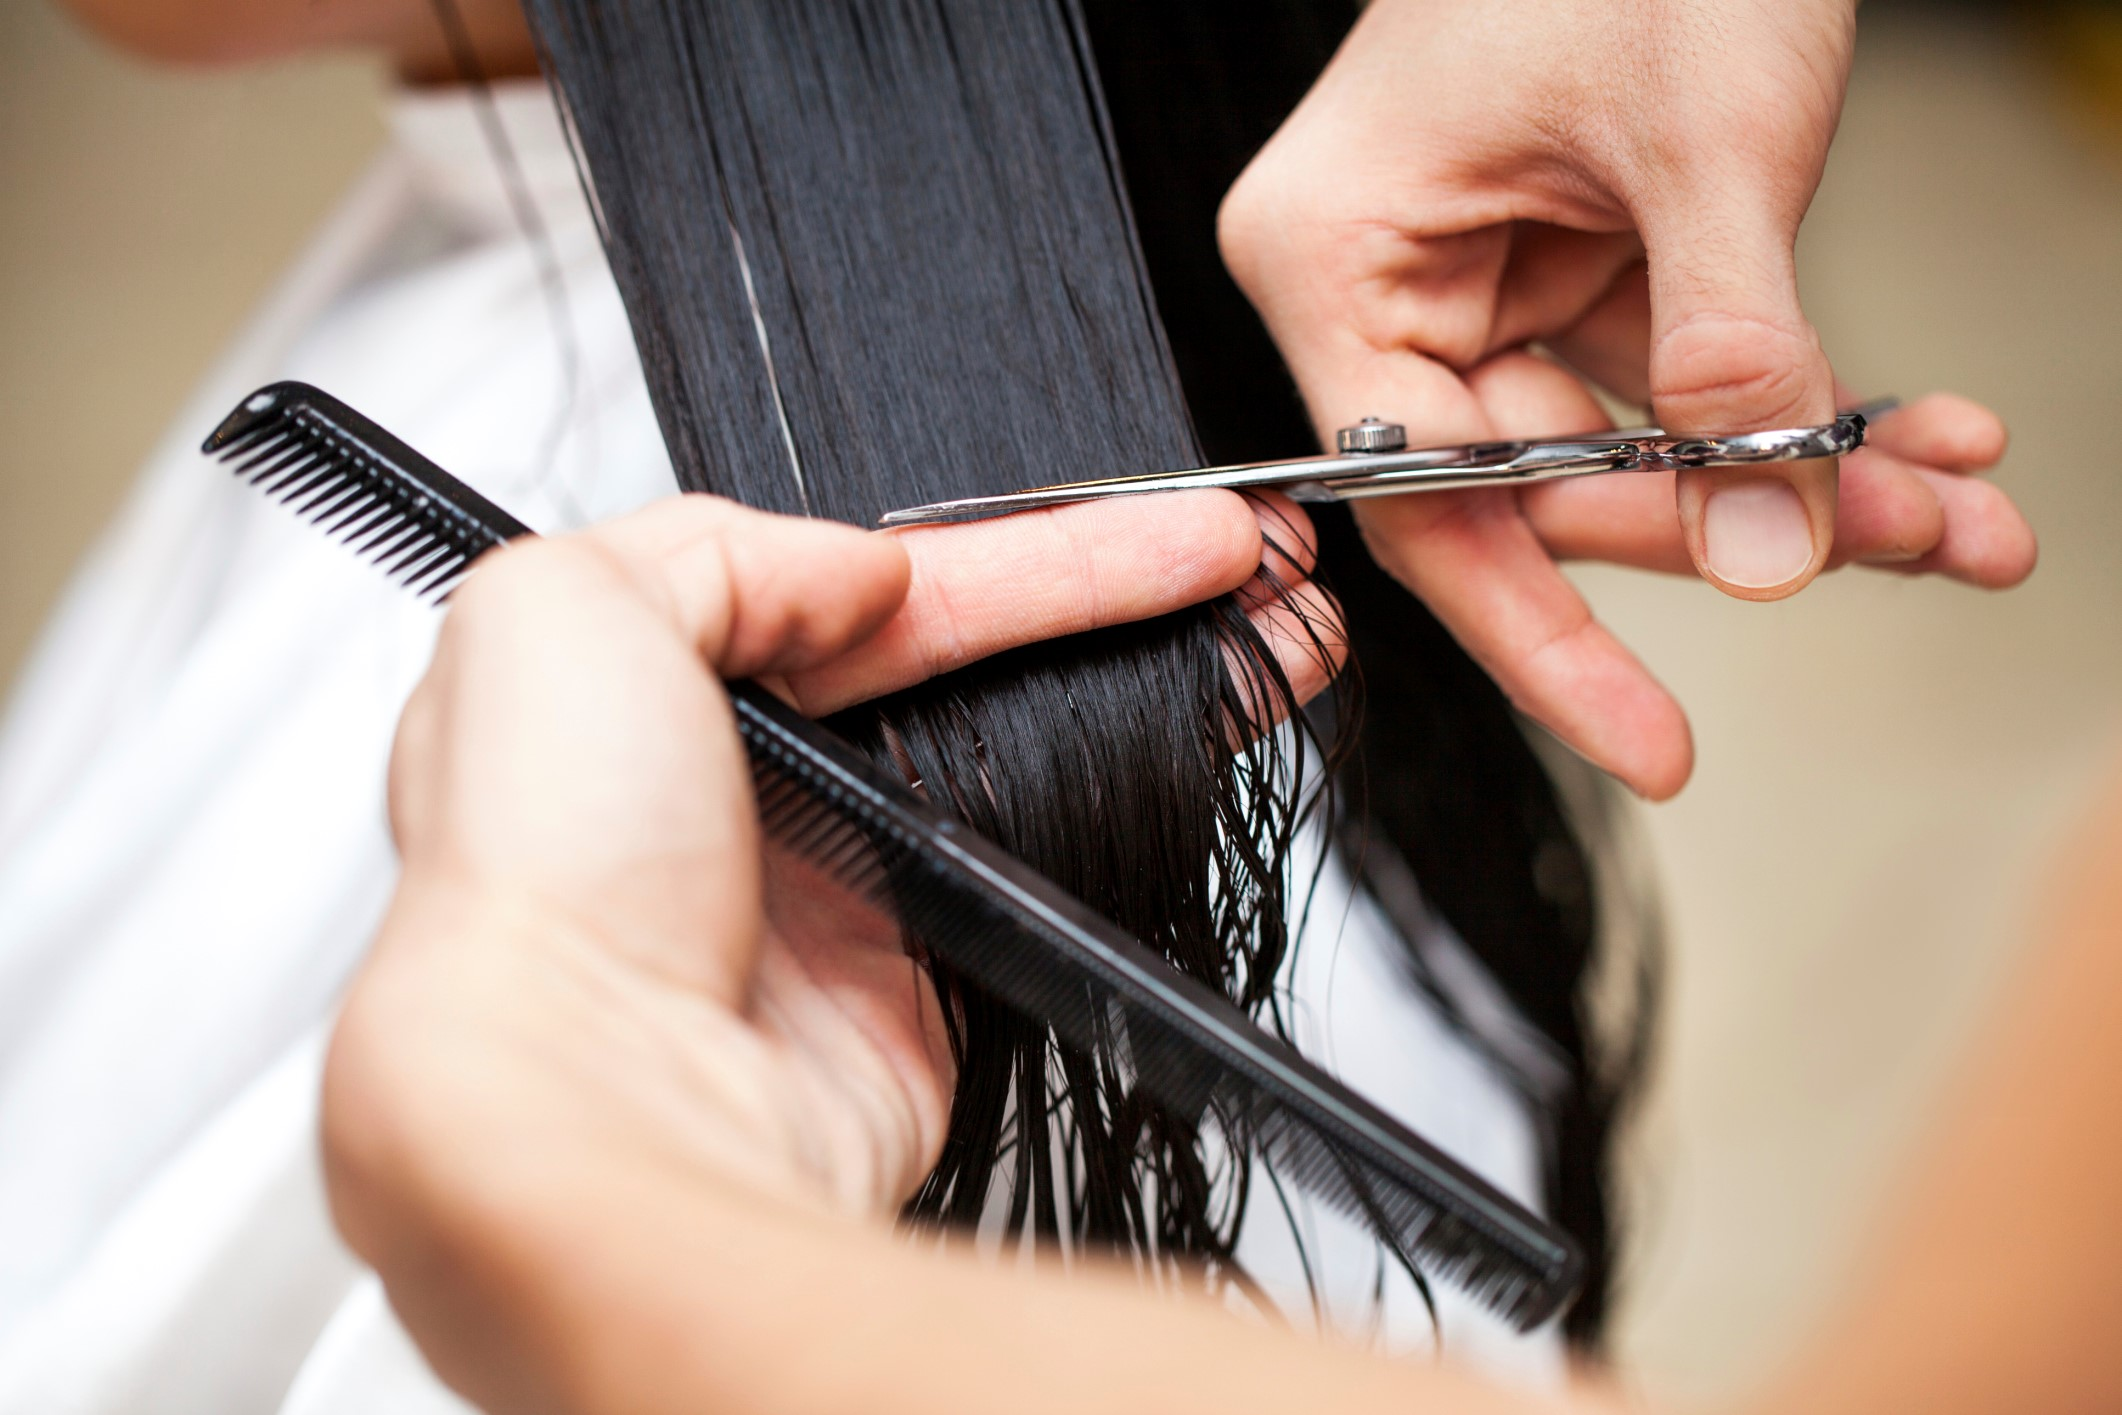 Cut the hair topper length to match your short hair